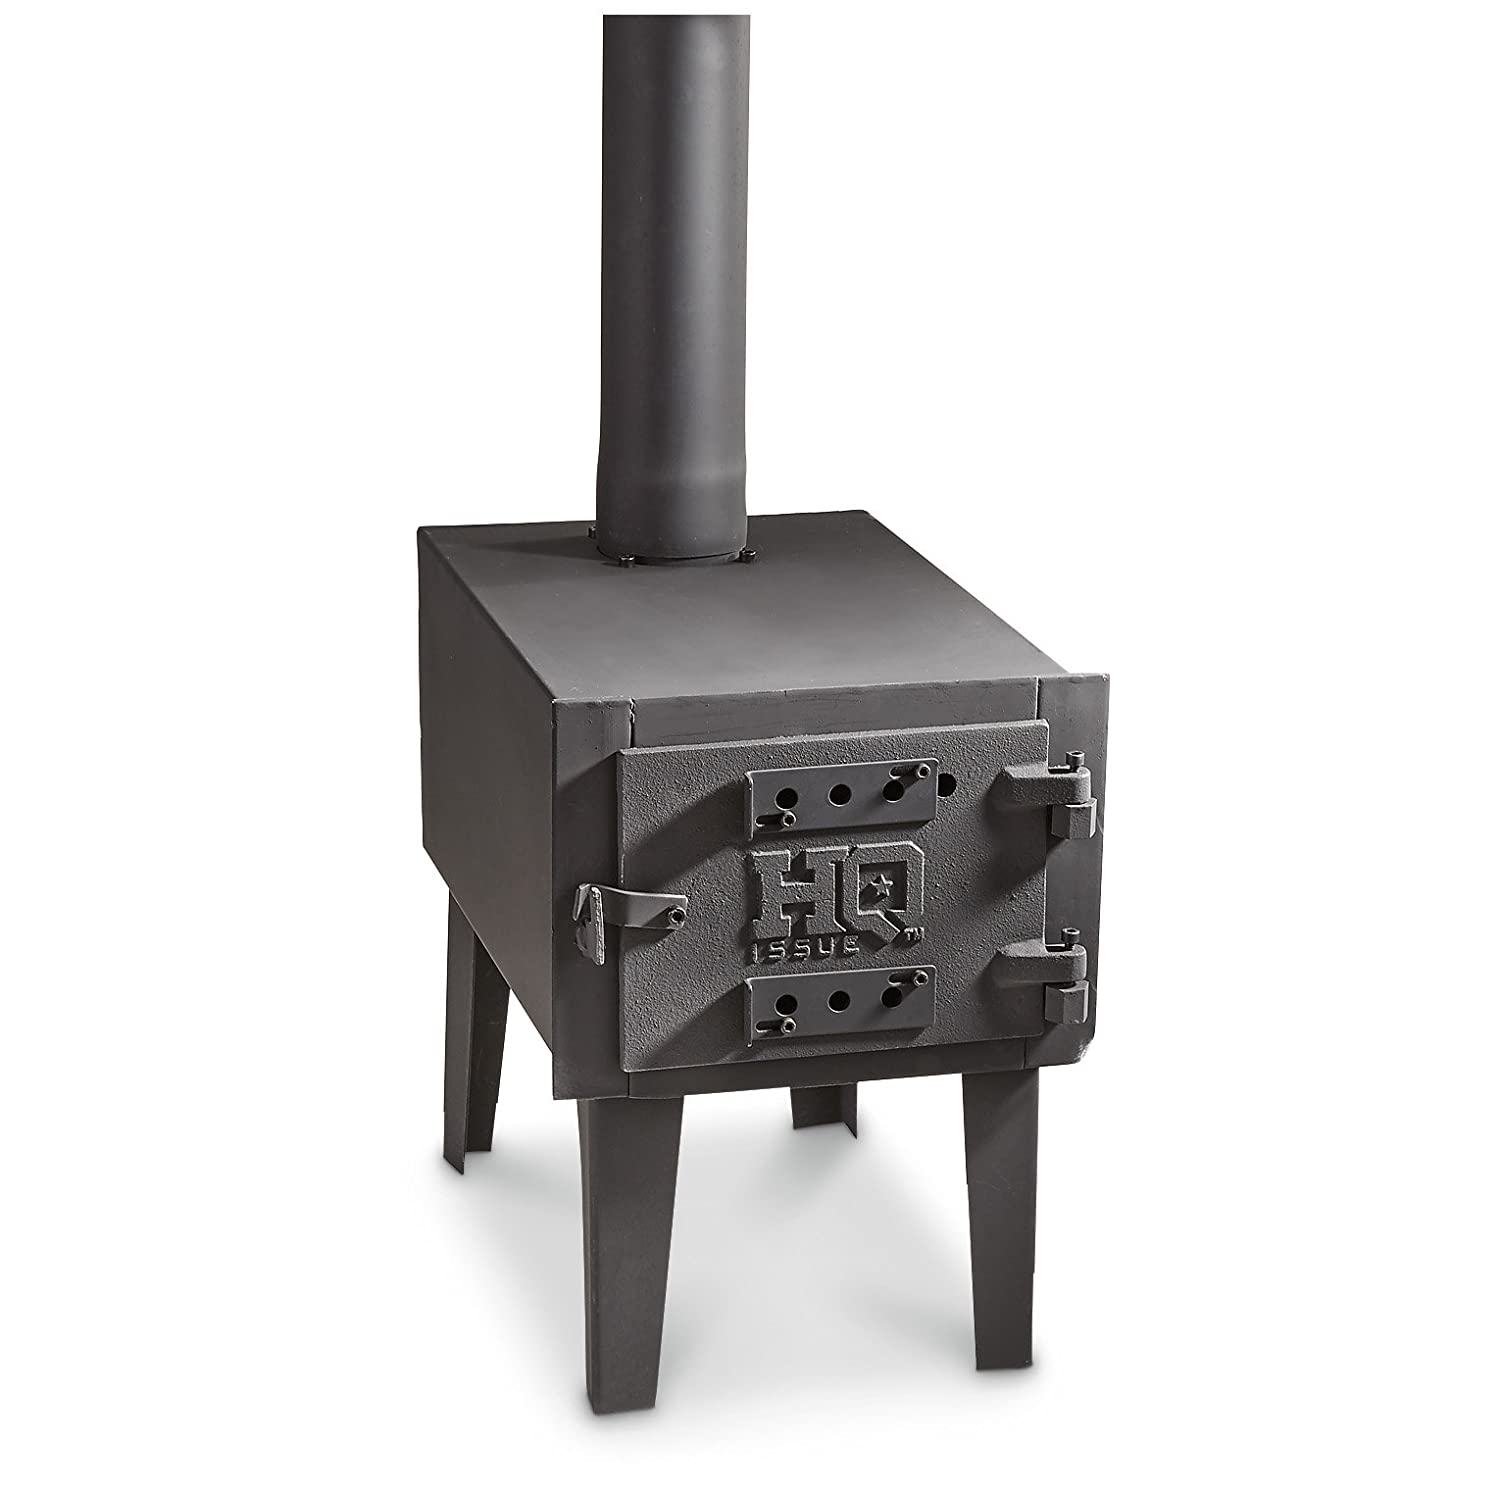 amazon com hq issue outdoor wood stove sports u0026 outdoors